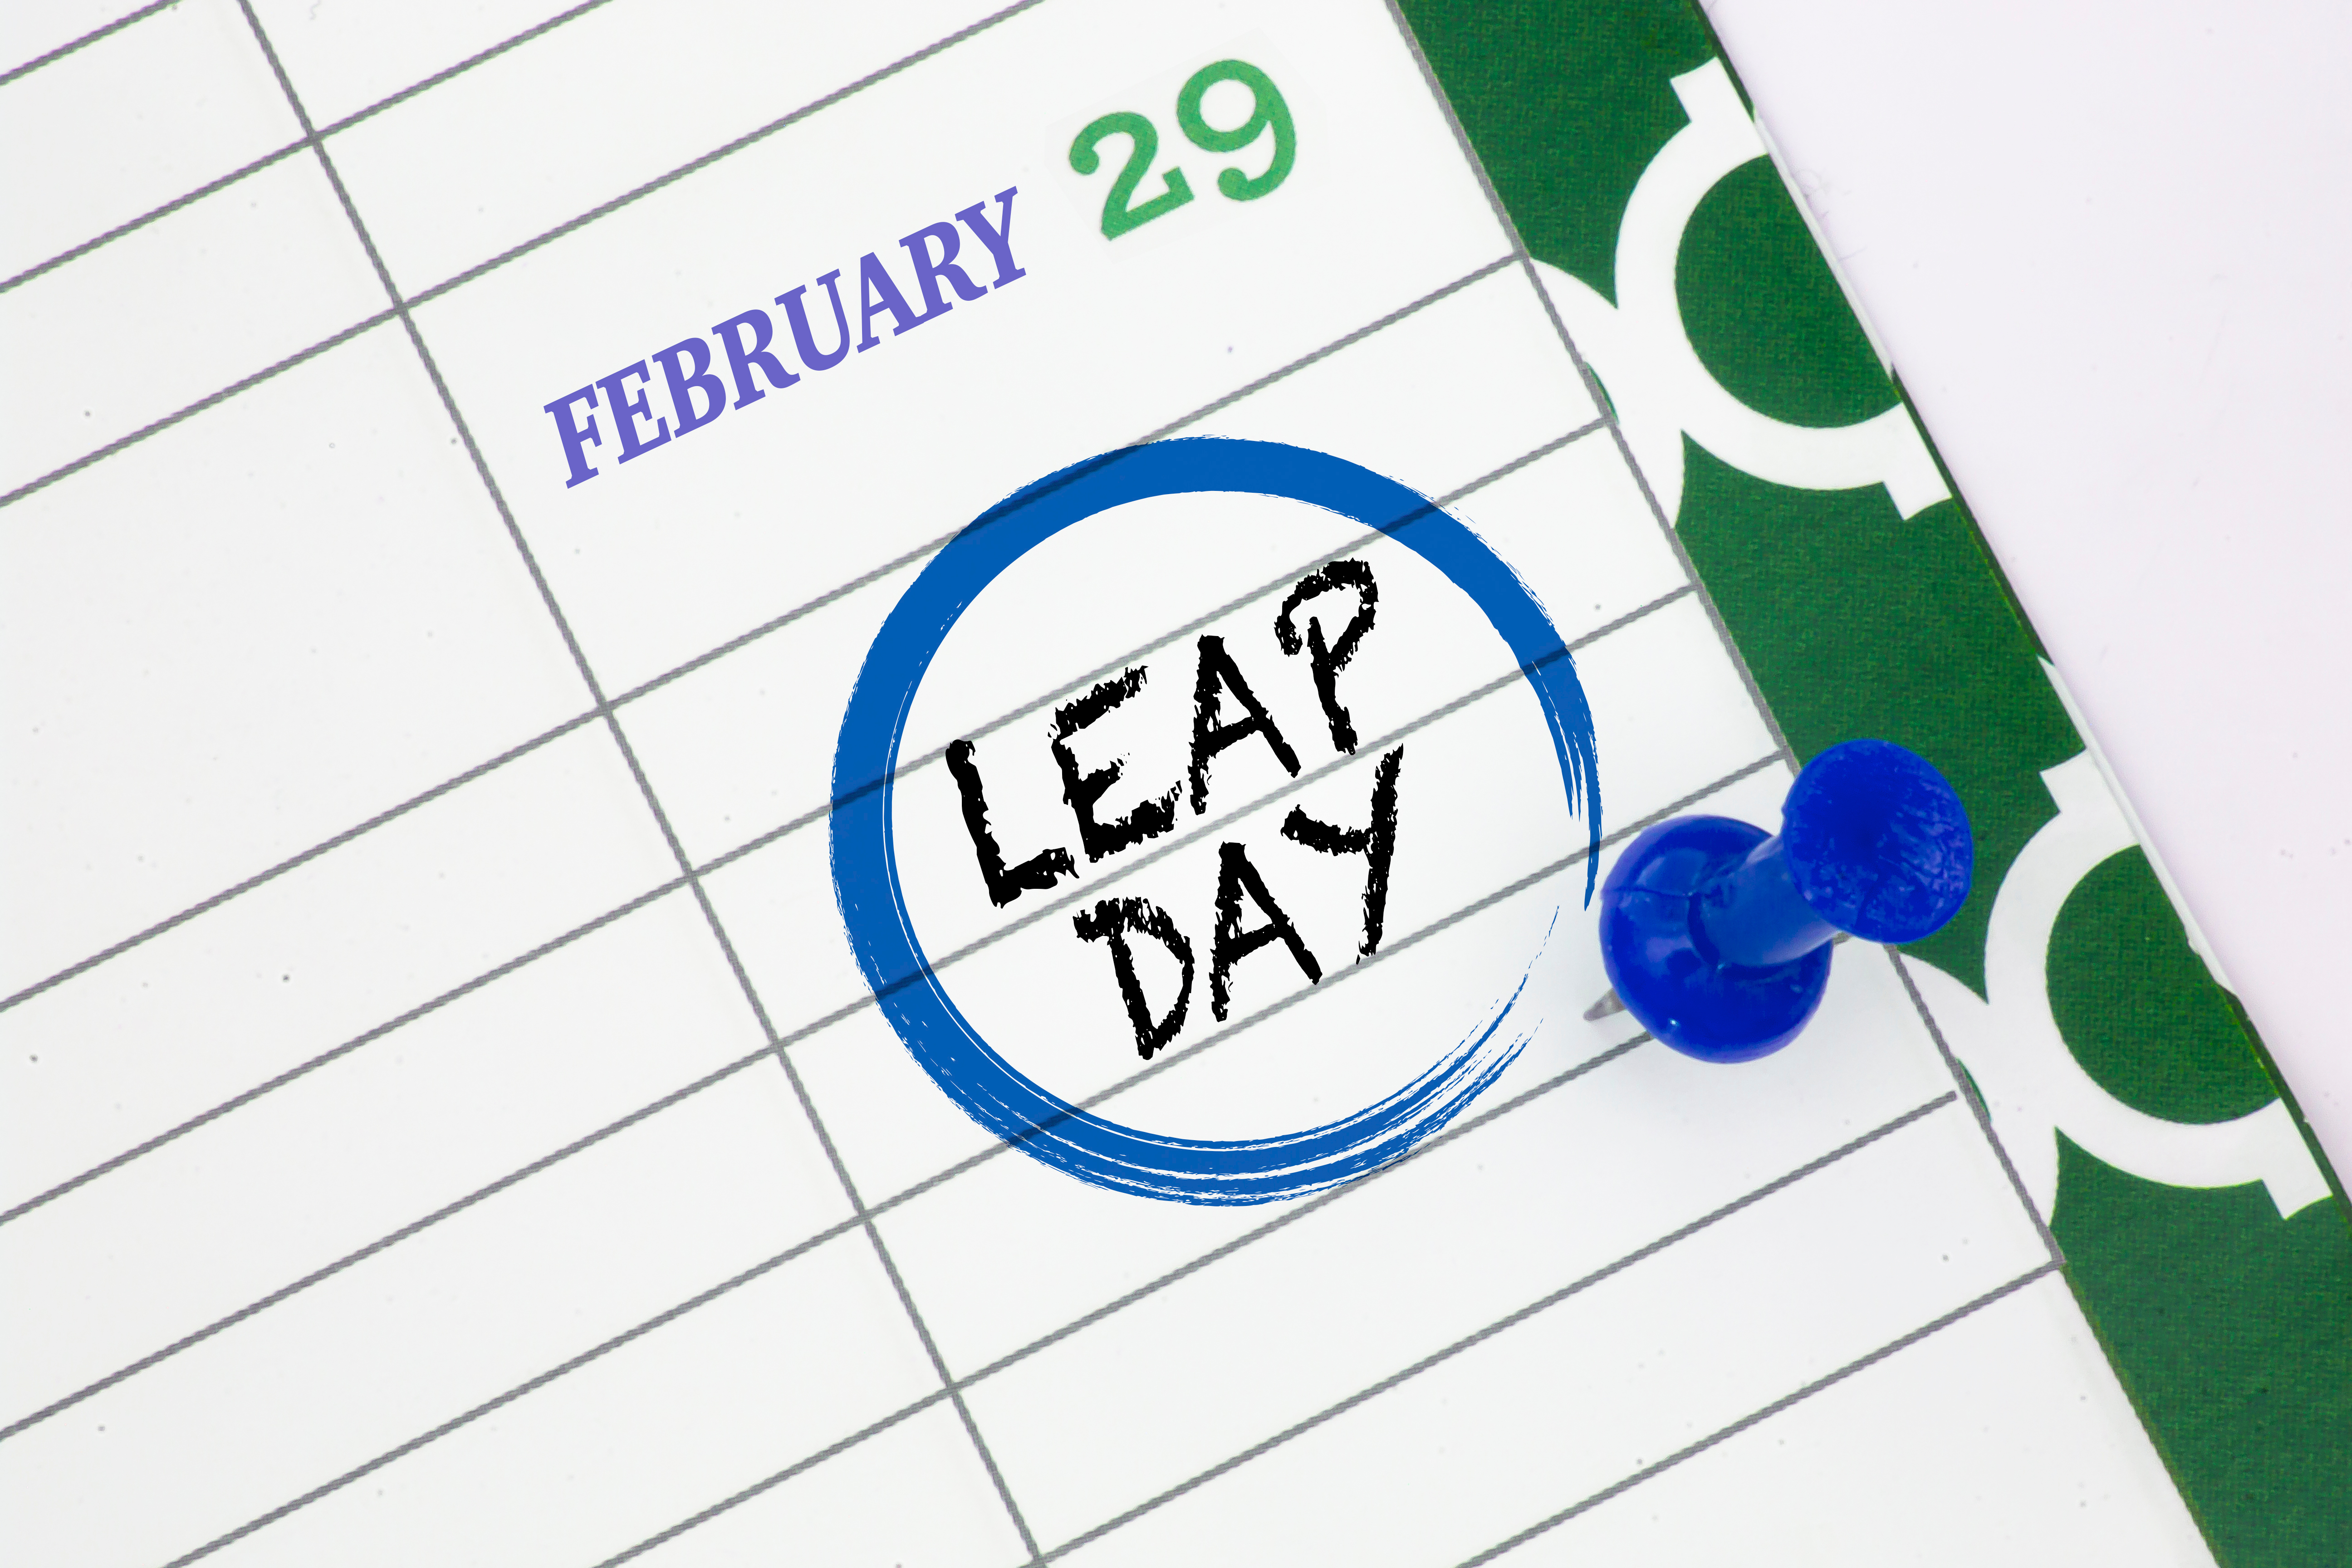 Pinot's Palette Apex and Leap Day 2020